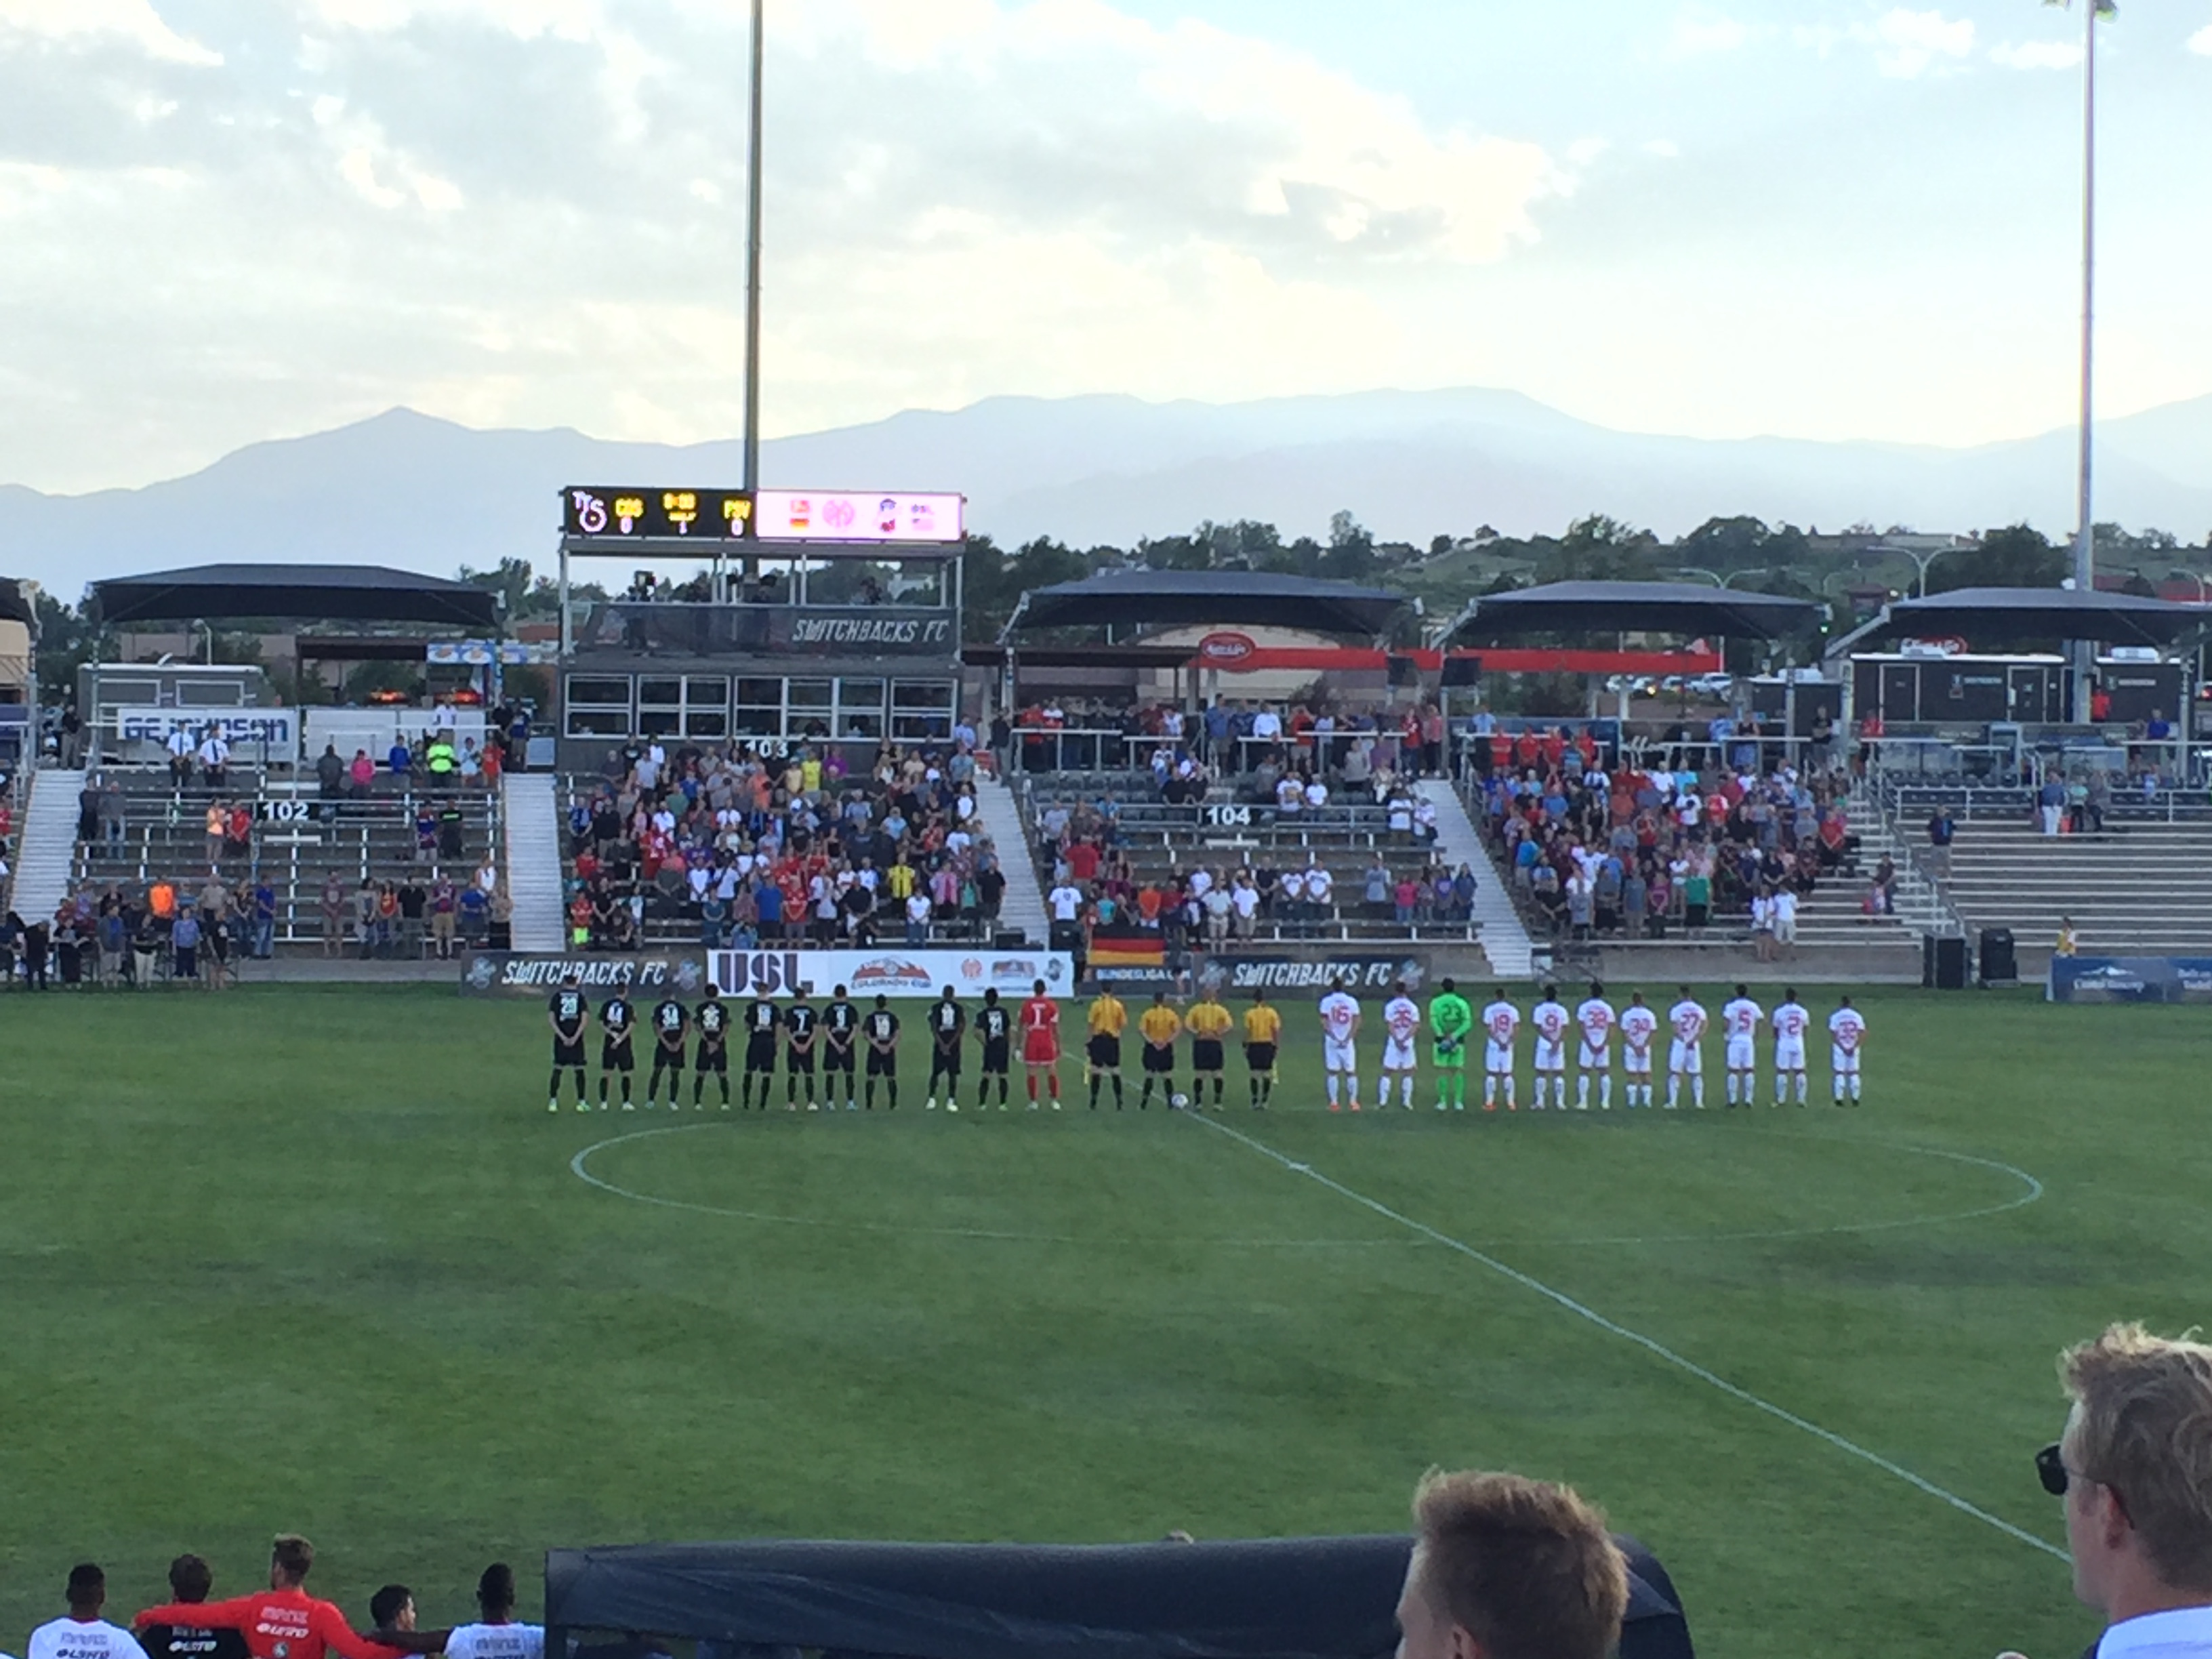 Switchbacks and Mainz stand for Germany's national anthem.